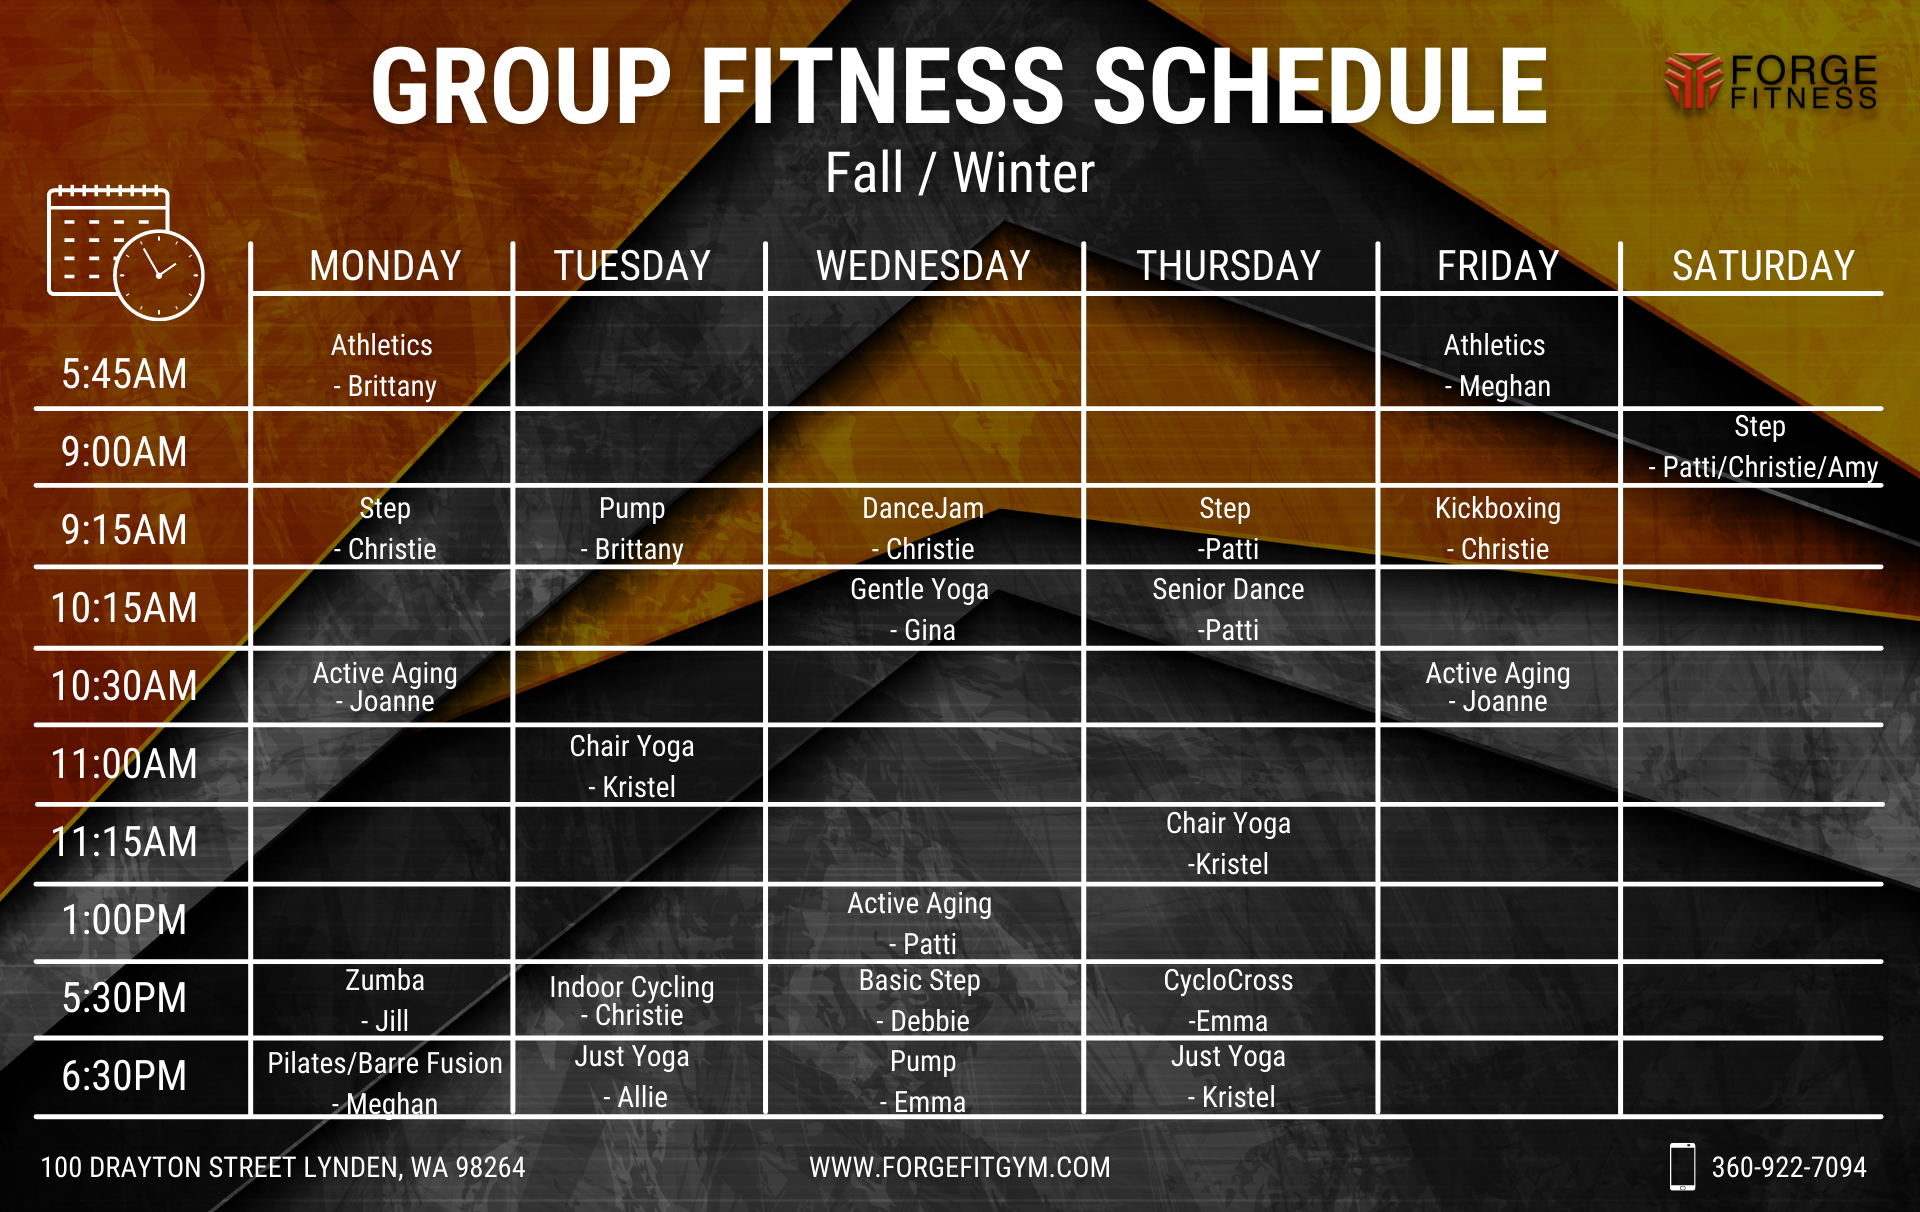 Forge Fitness Fall/Winter Schedule